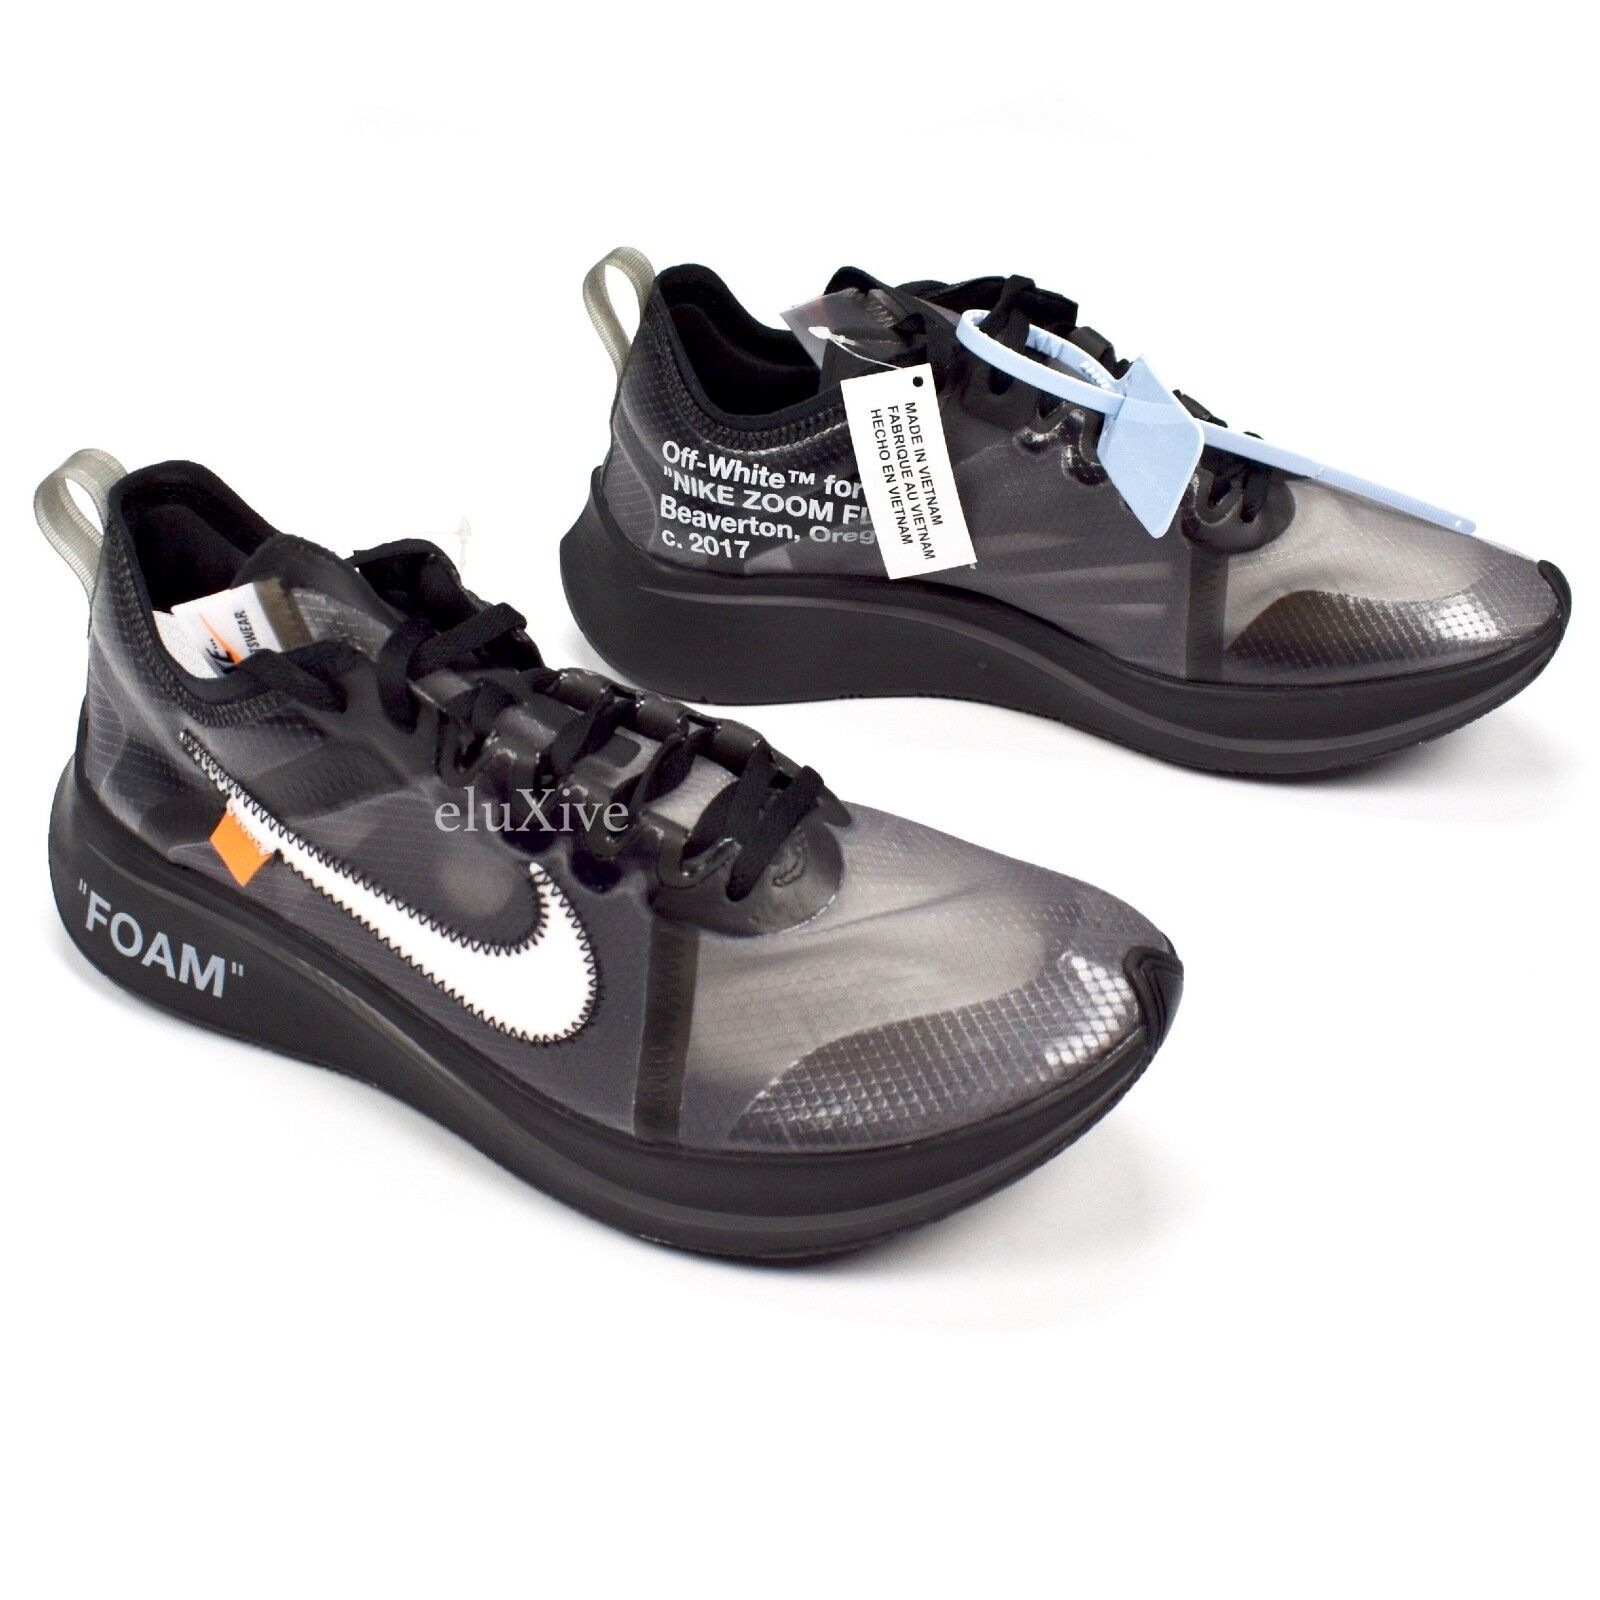 NWT Nike Off-White Virgil Abloh Air Zoom Fly Black White Men's 9 2018 AUTHENTIC